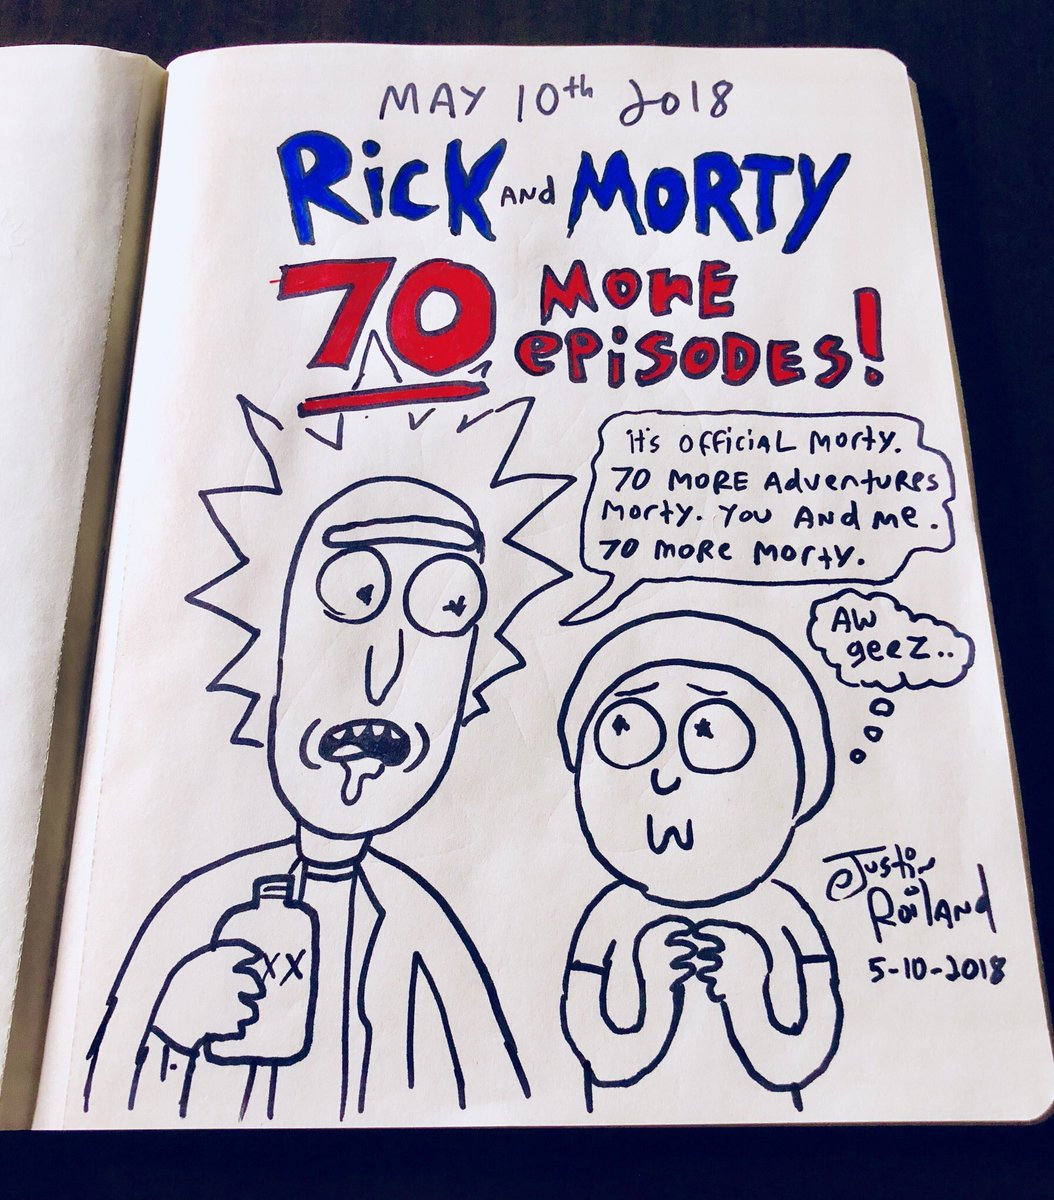 70 st. nya avsnitt av tv-serien Rick and Morty